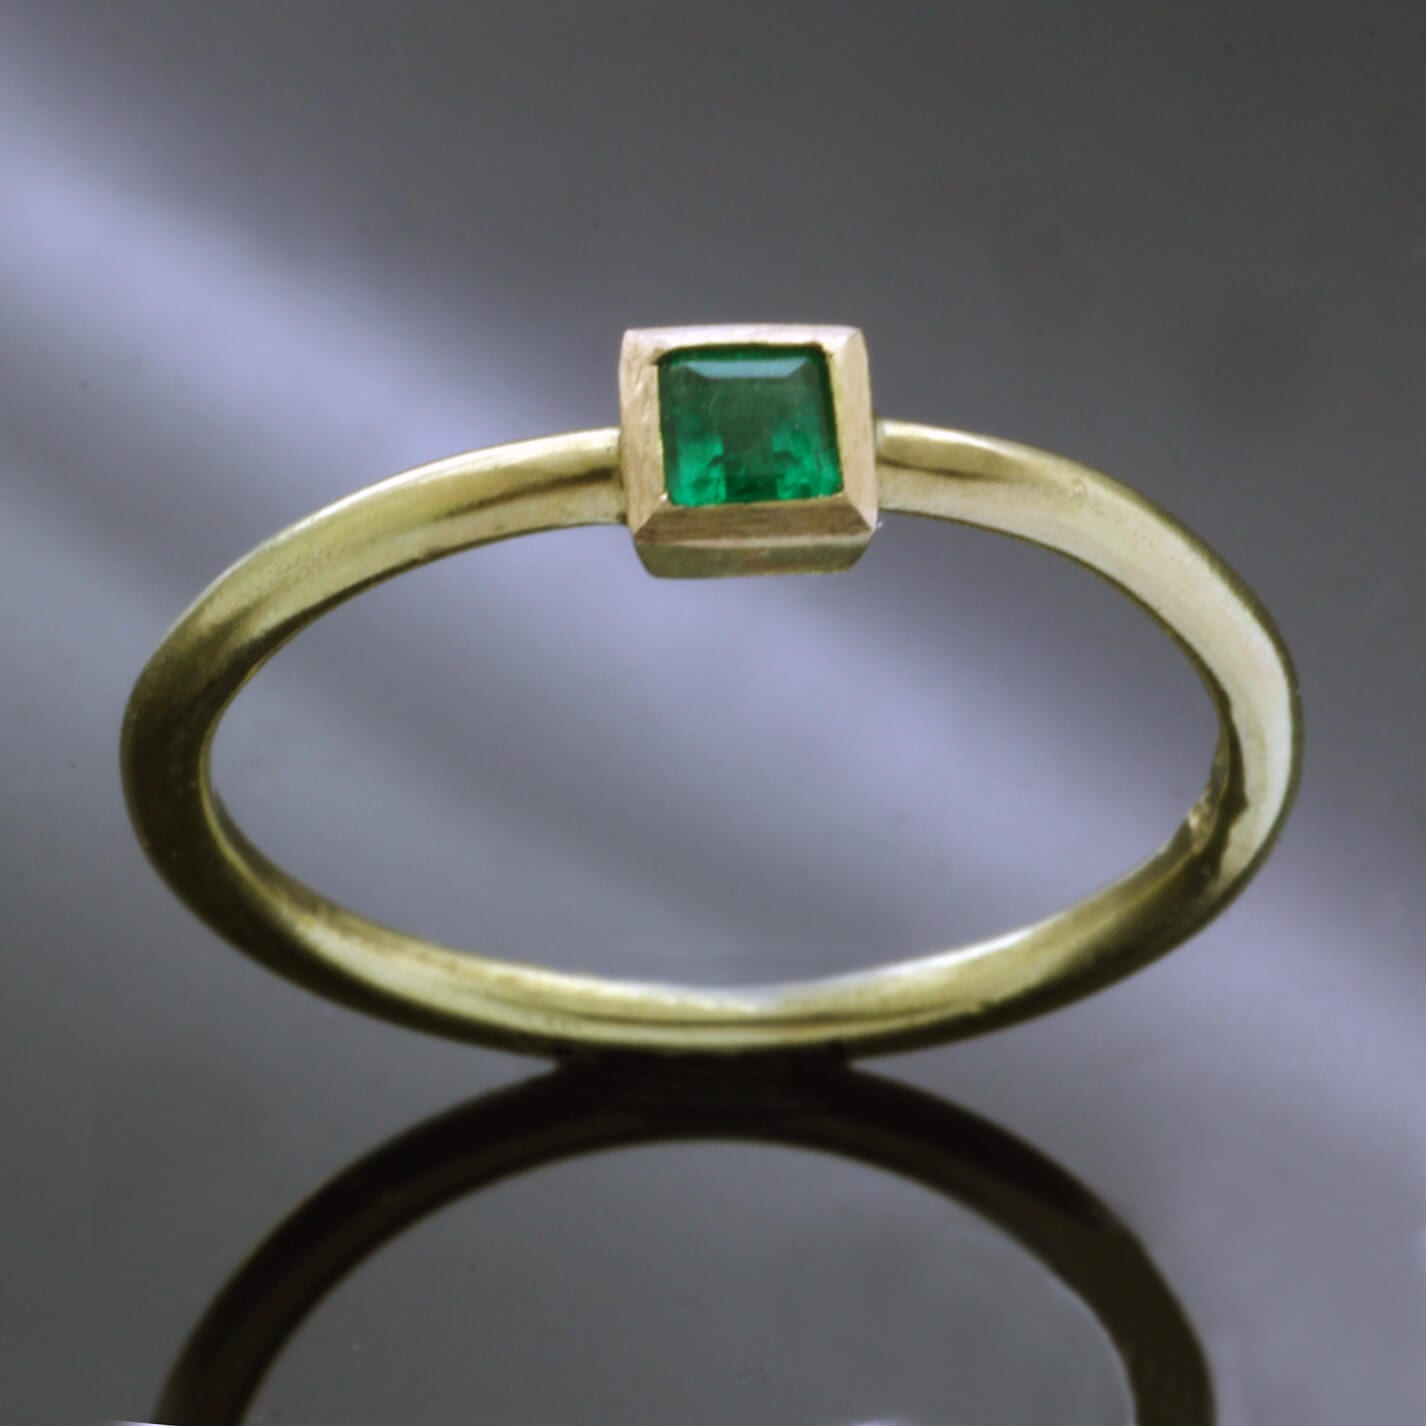 Square cut Emerald precious gemstone handmade Yellow Gold ring